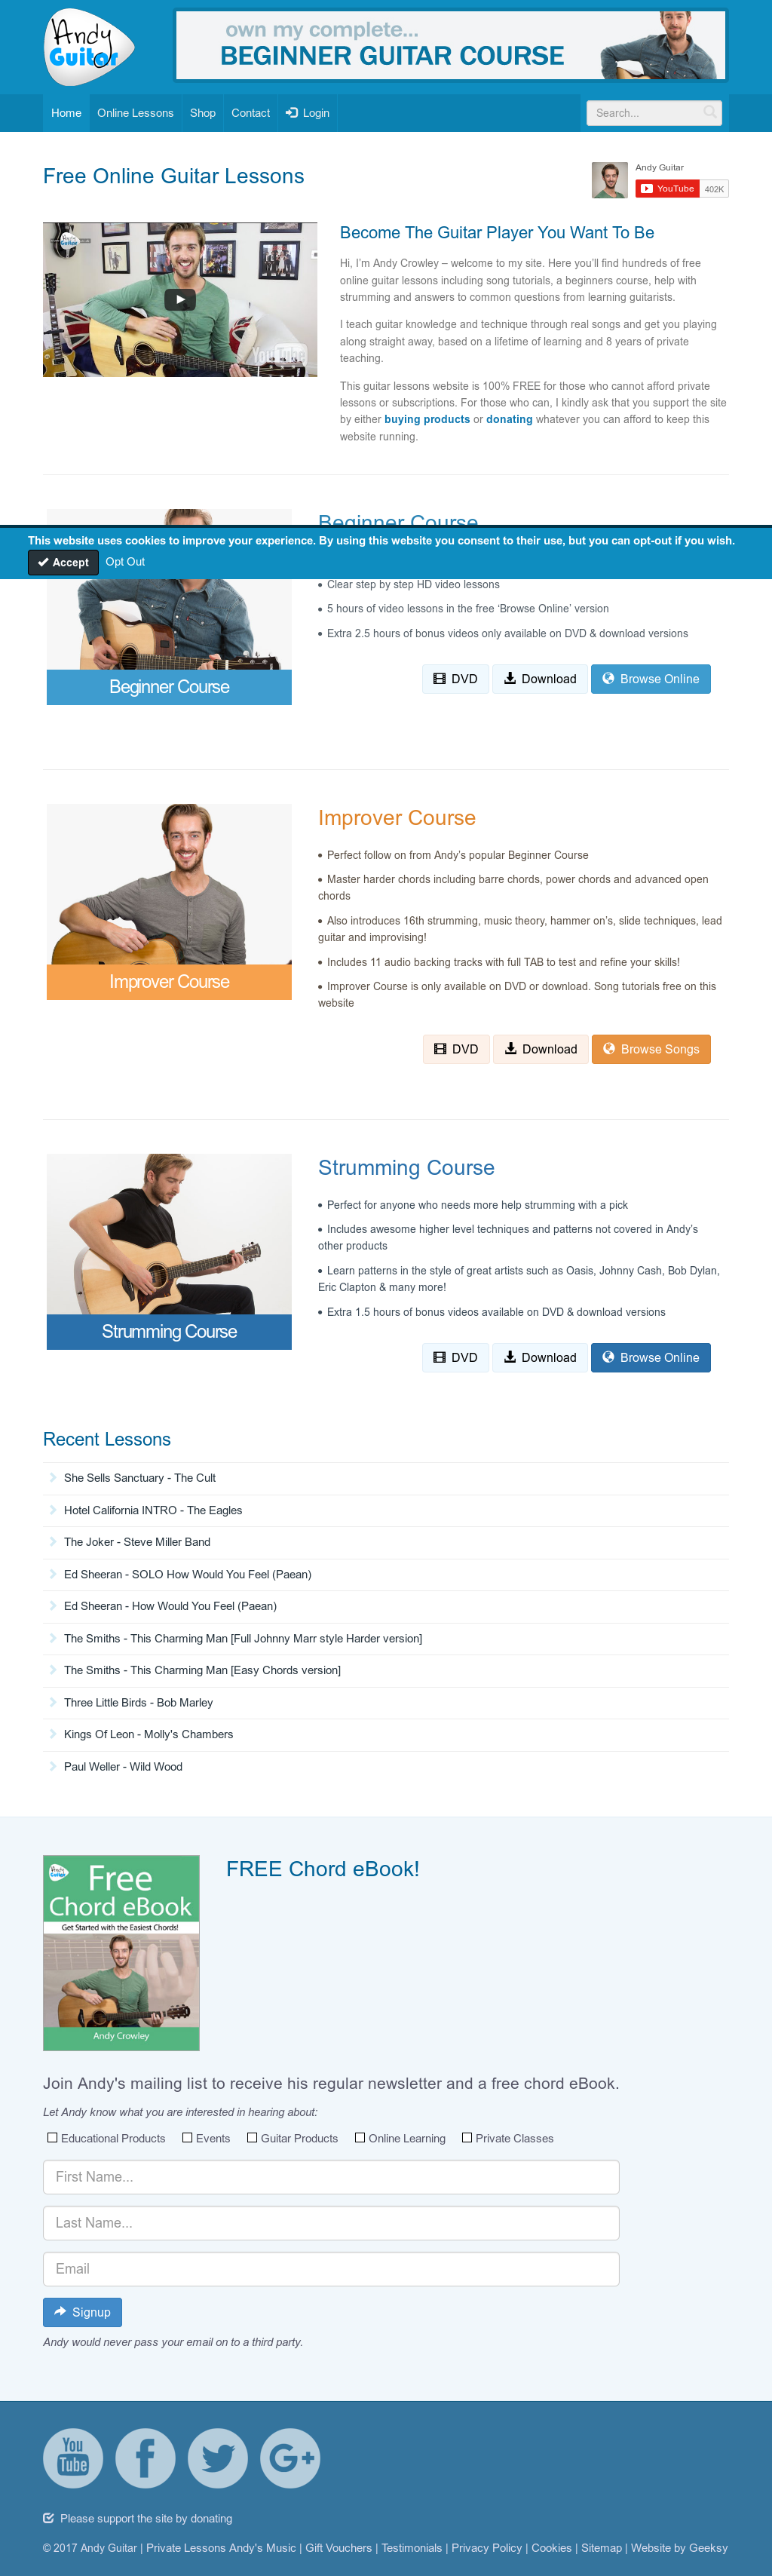 Andy Guitar Lessons Leeds Competitors Revenue And Employees Owler